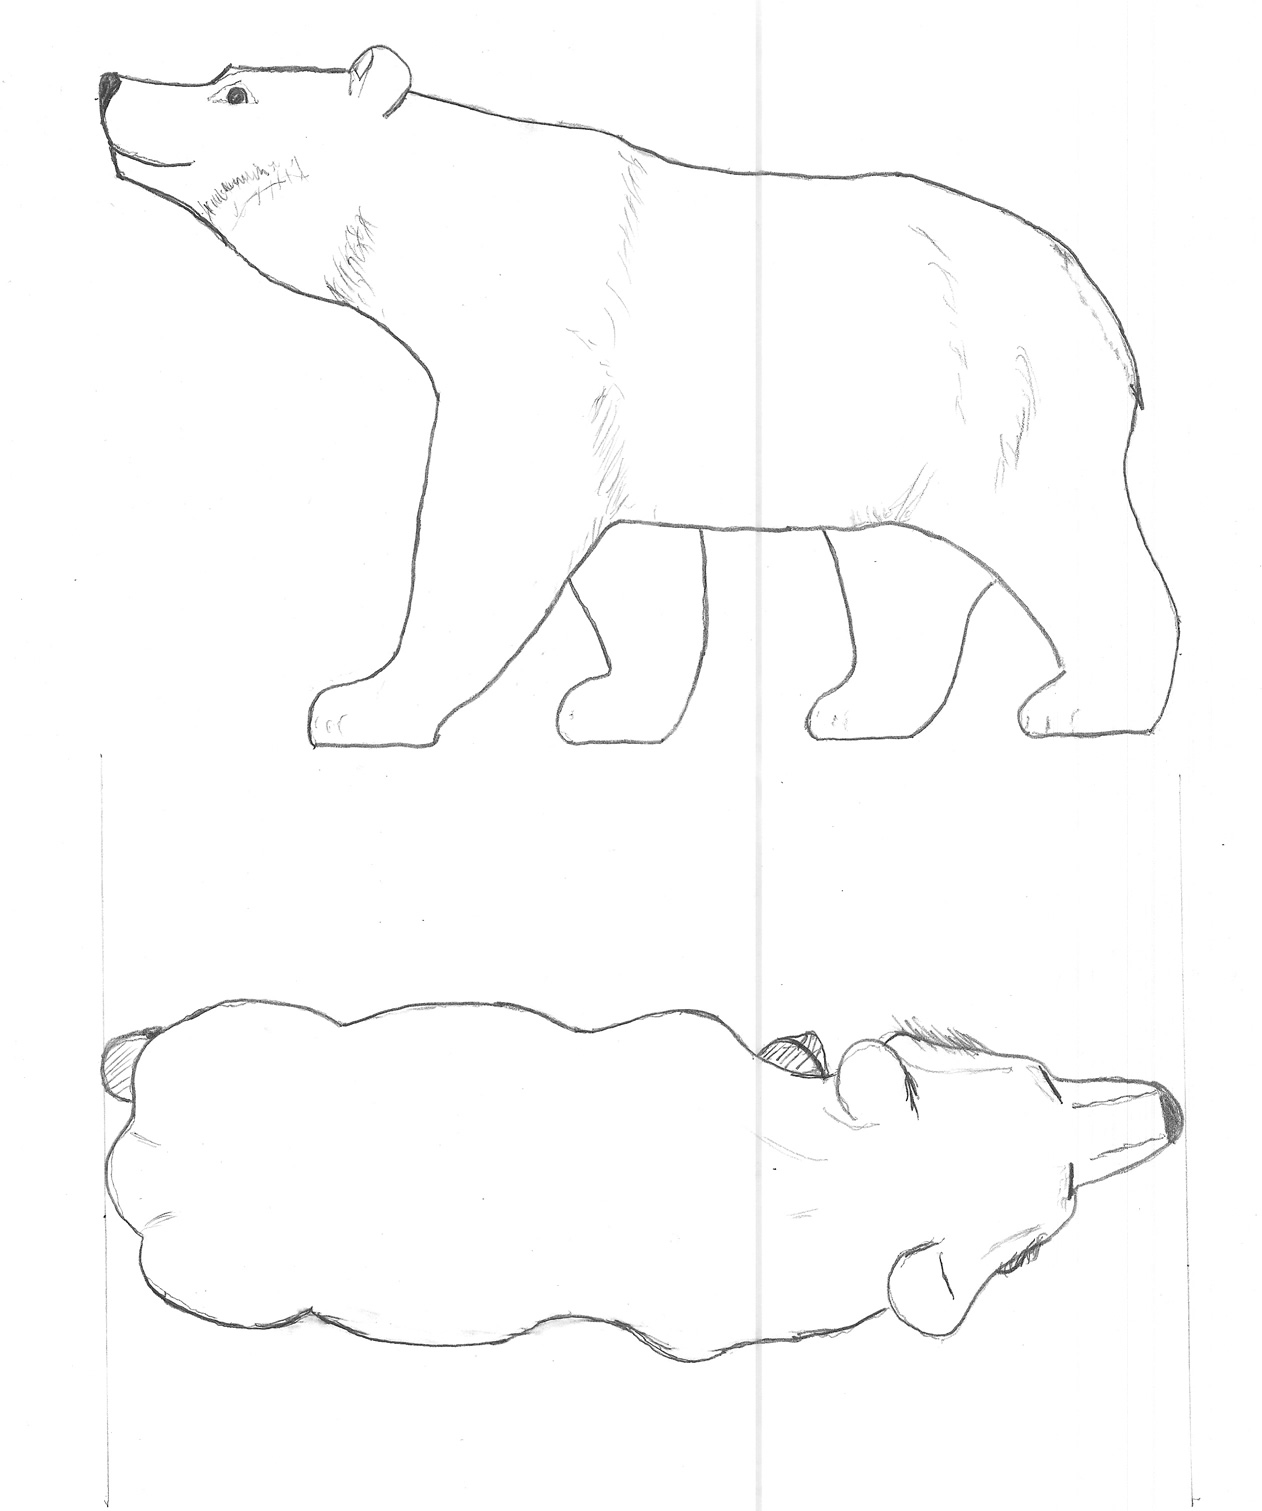 Whittling Whittling wood and Wooden animals t